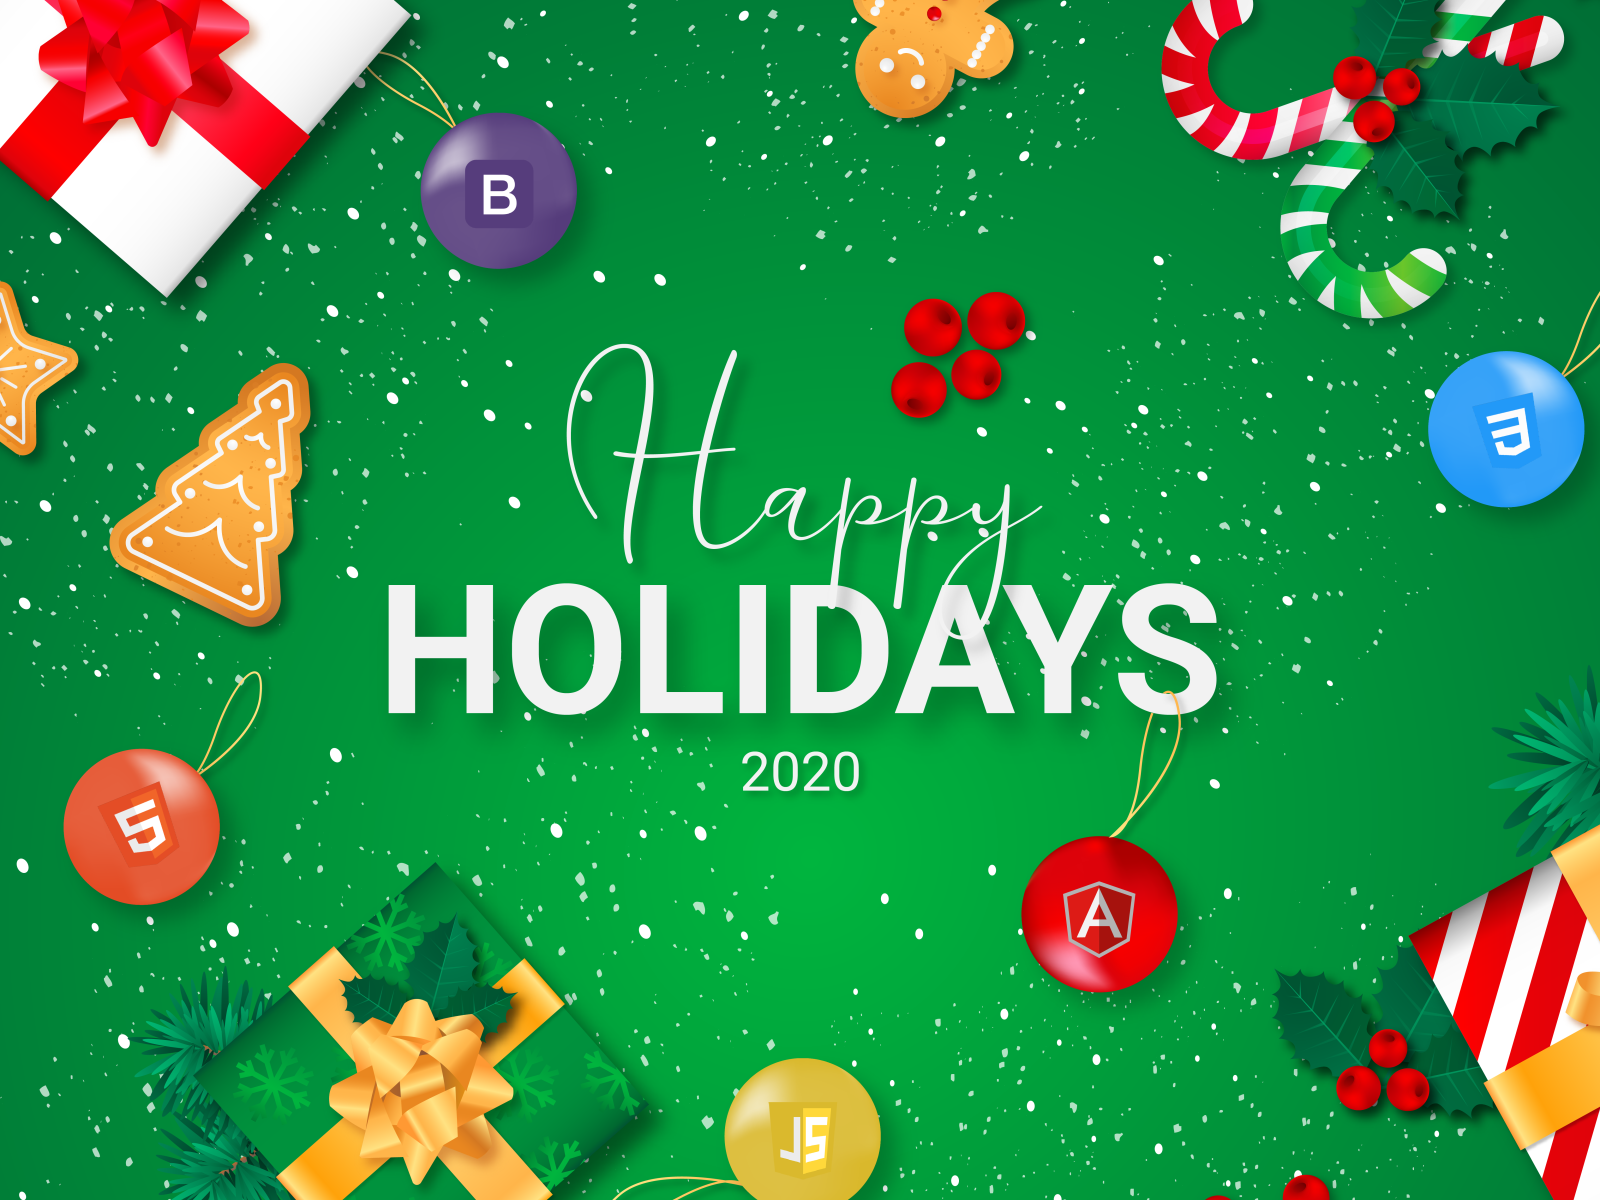 Happy Holidays 2020 by Martin Stefanovic on Dribbble 1600x1200